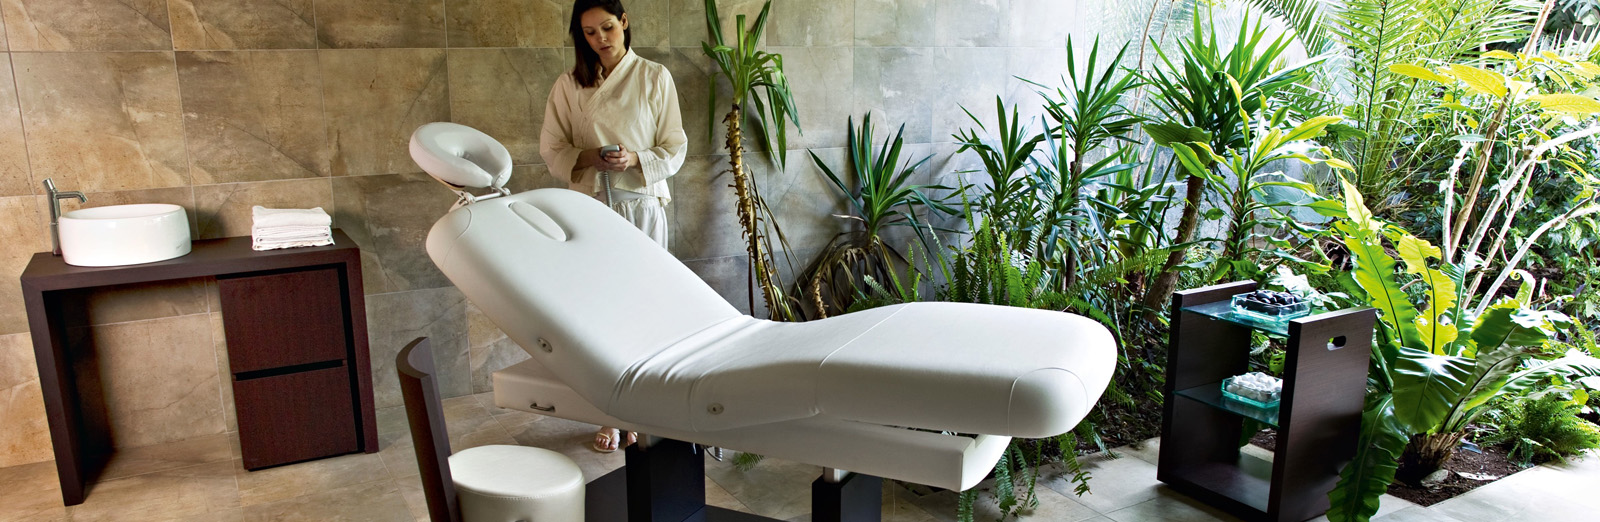 wellness beds in south africa